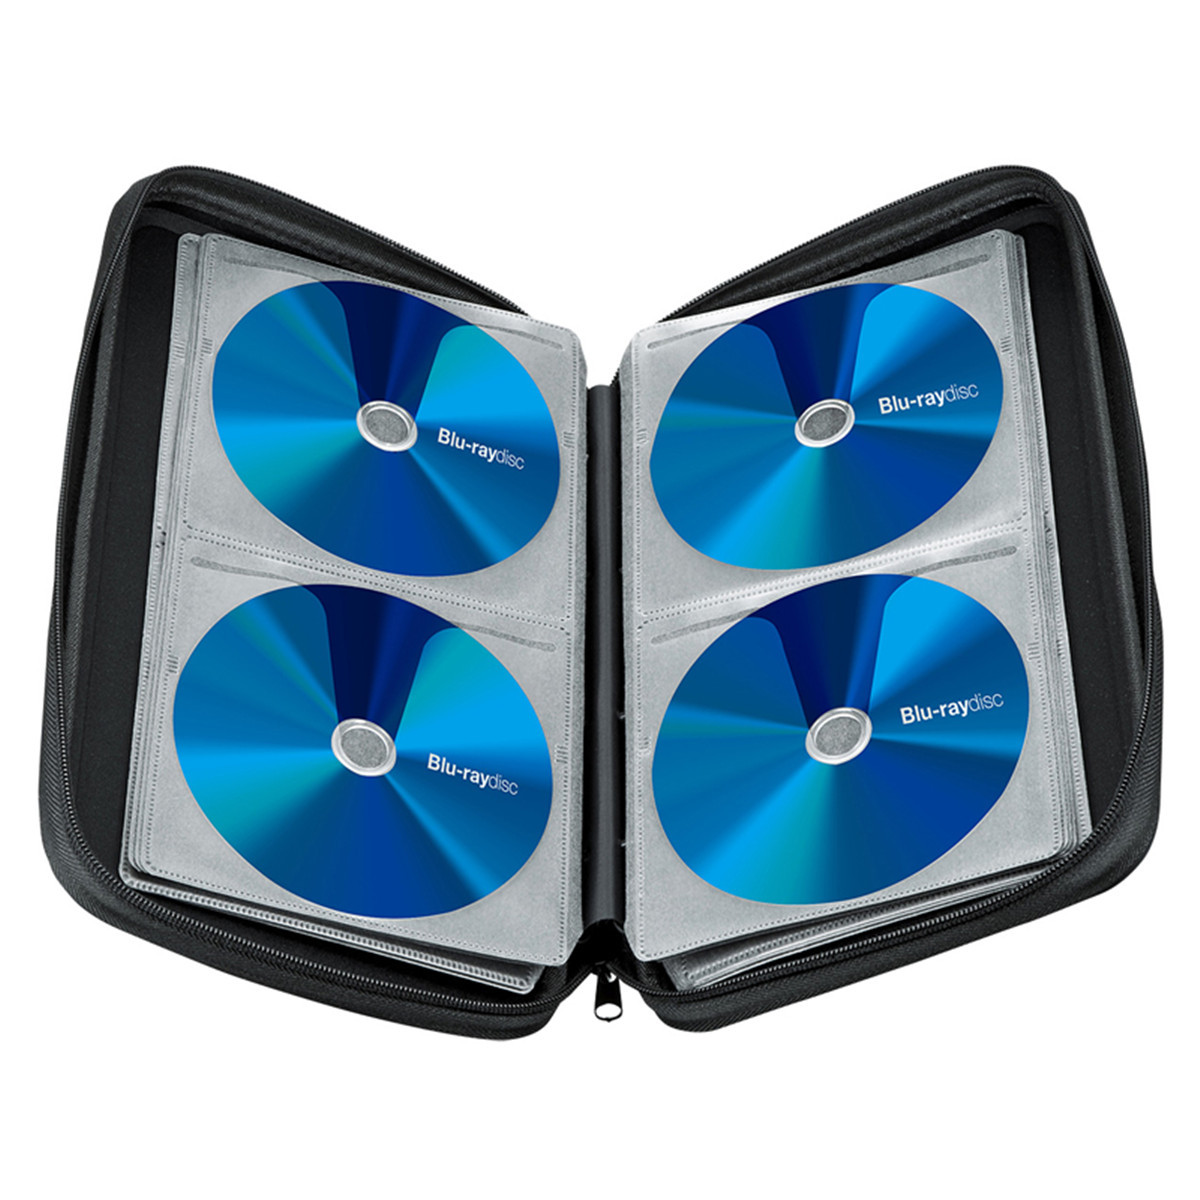 Storage Carrying Case Holder Wallet Organizer Holds 128Pcs For CD DVD Blu-Ray Disc